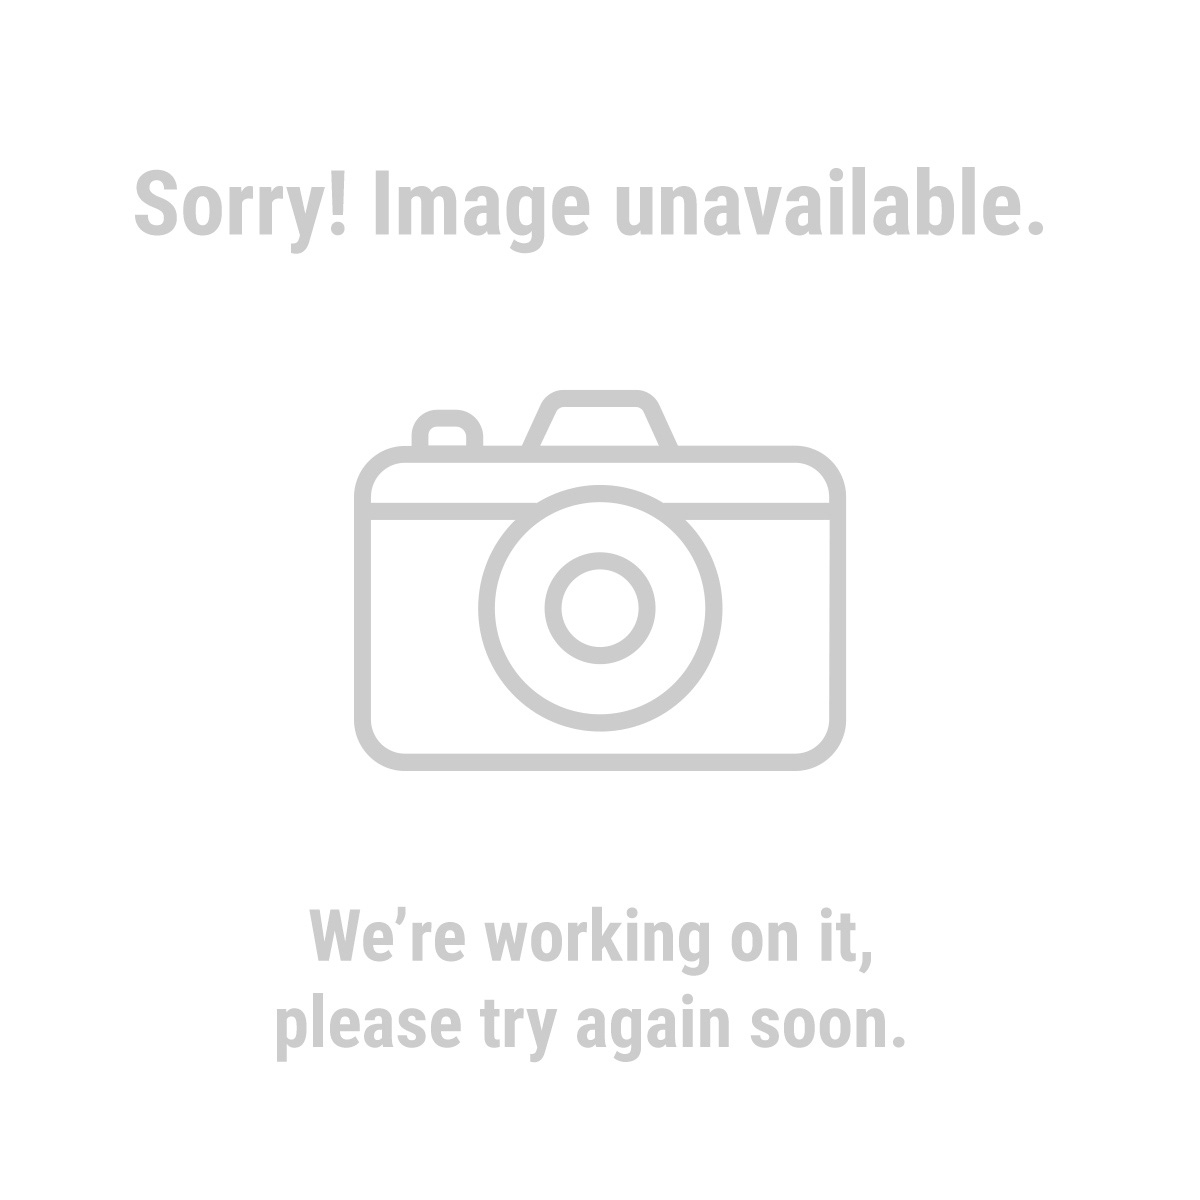 Chicago Electric Power Tools 61973 10 in. Compound Miter Saw with Laser Guide System